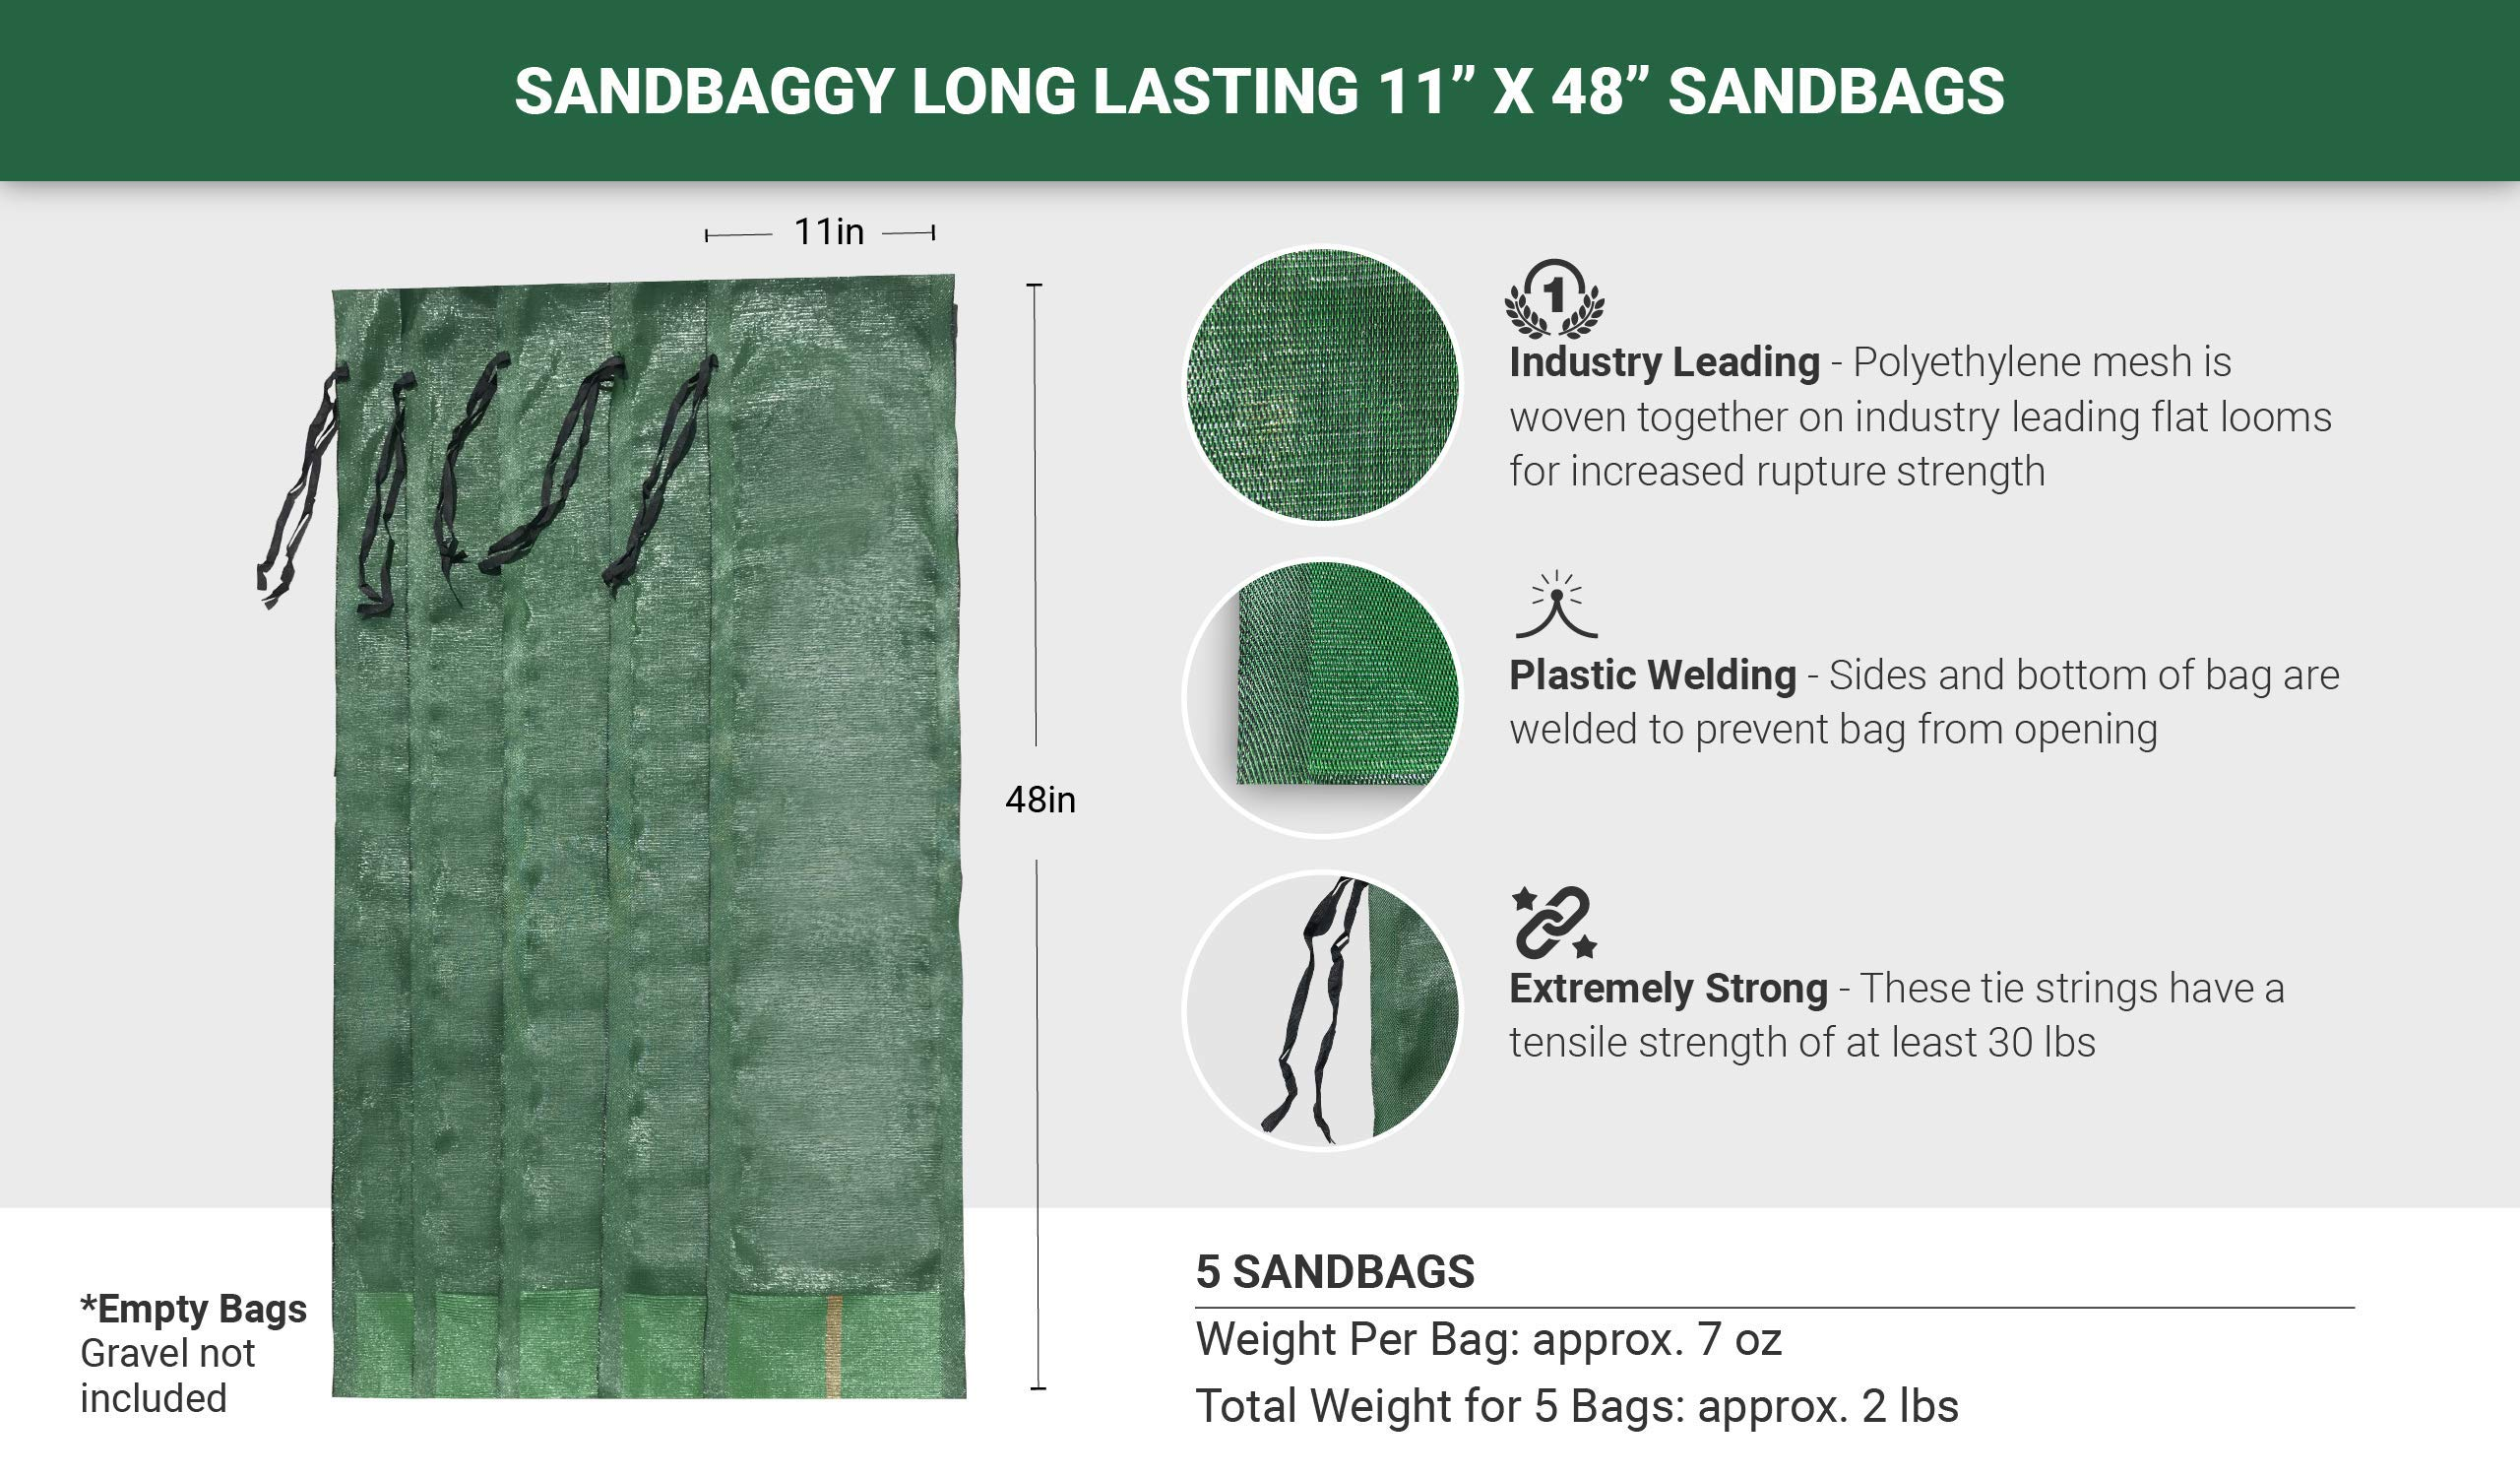 Sandbaggy - 11'' x 48'' Long-Lasting Sandbags - Lasts 1-2 Yrs - Sandbags for Flooding - Monofilament - Sand Bag - Flood Water Barrier - Water Curb - Tent Sandbags - Store Bags (Pack of 5) by Sandbaggy